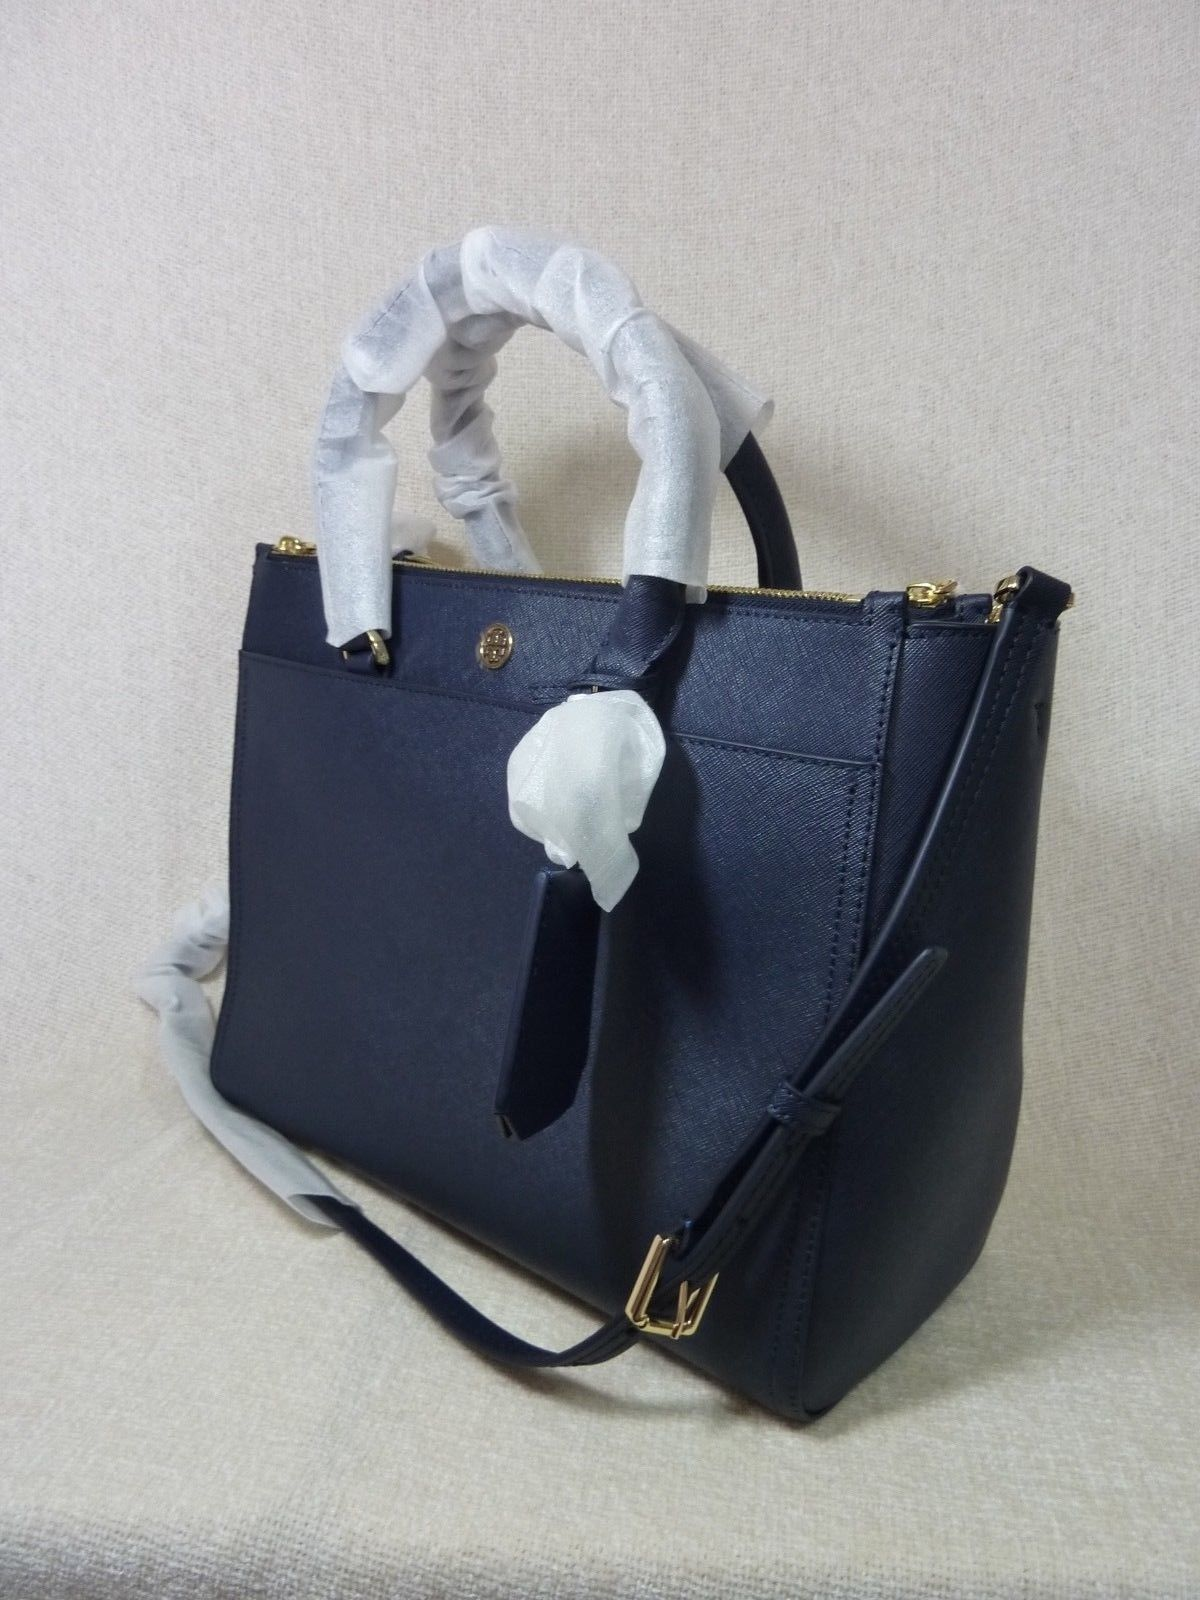 Tory Burch Navy Blue Saffiano Leather Robinson Double-Zip Tote $458 image 2